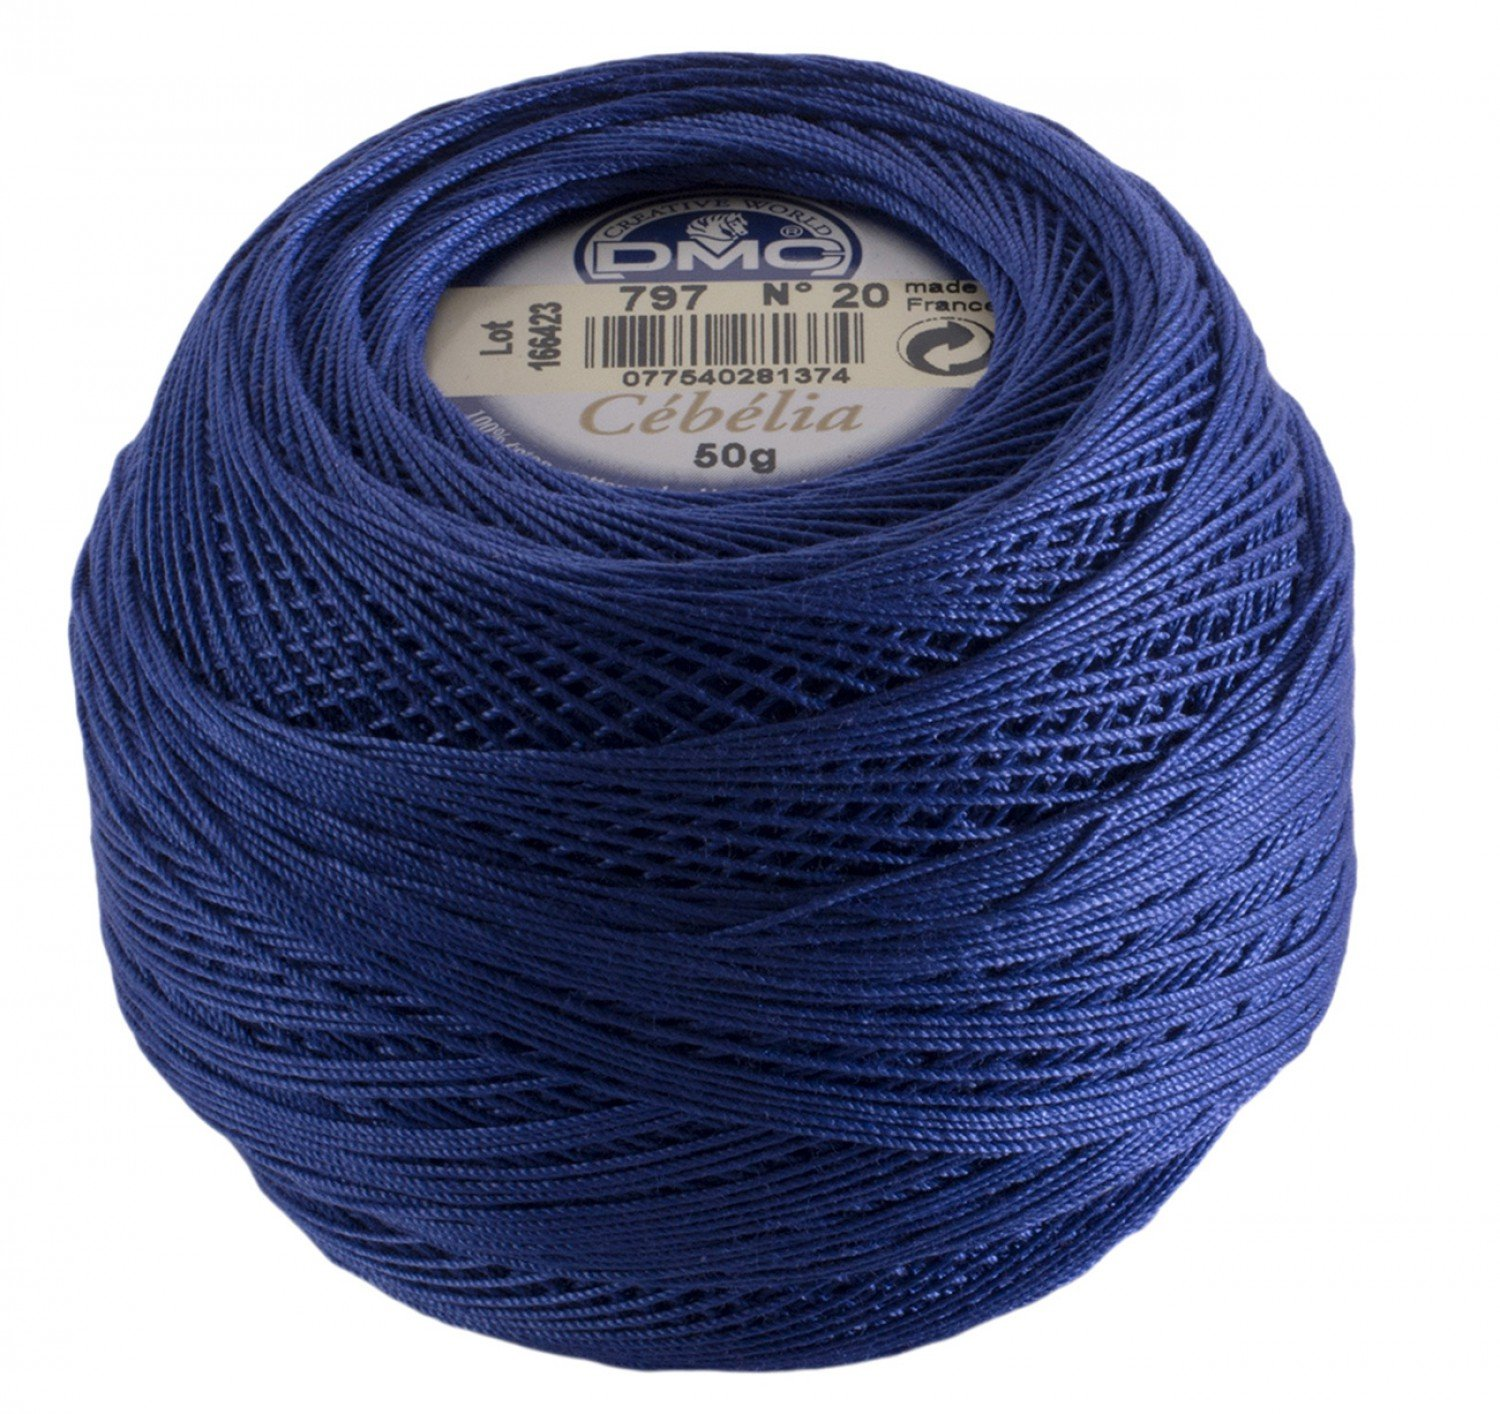 Cebelia #797 Royal Blue